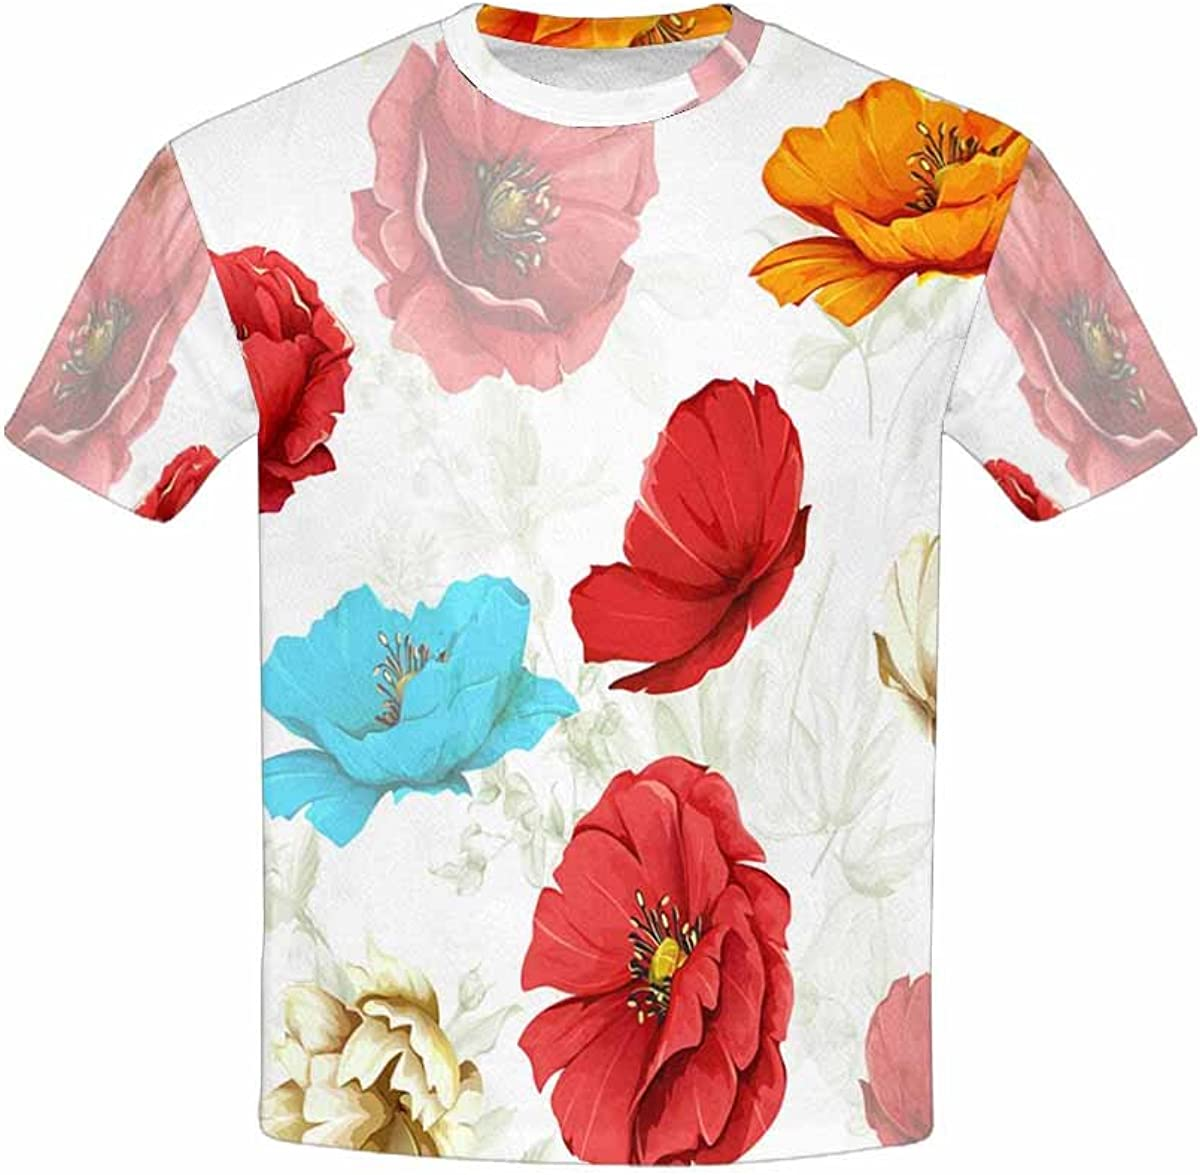 XS-XL INTERESTPRINT Childs T-Shirt Different Colored Poppy Flowers